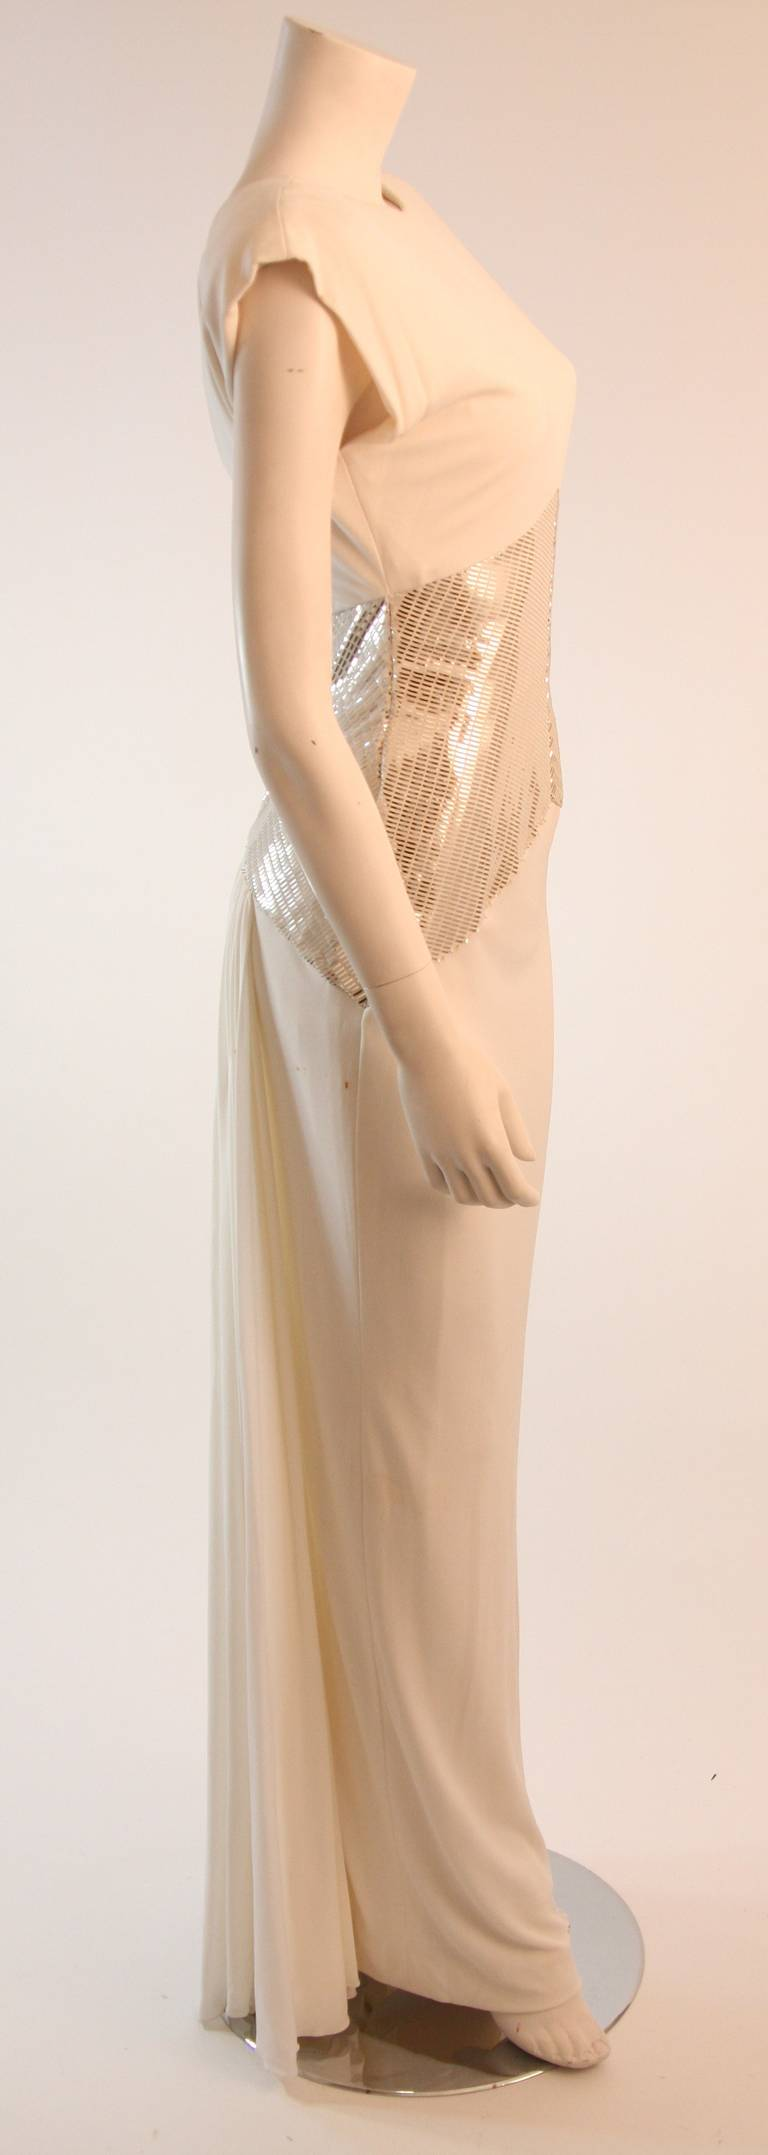 Vicky Tiel Futurism White Column Gown with Metallic Waist Detail 4-6 7